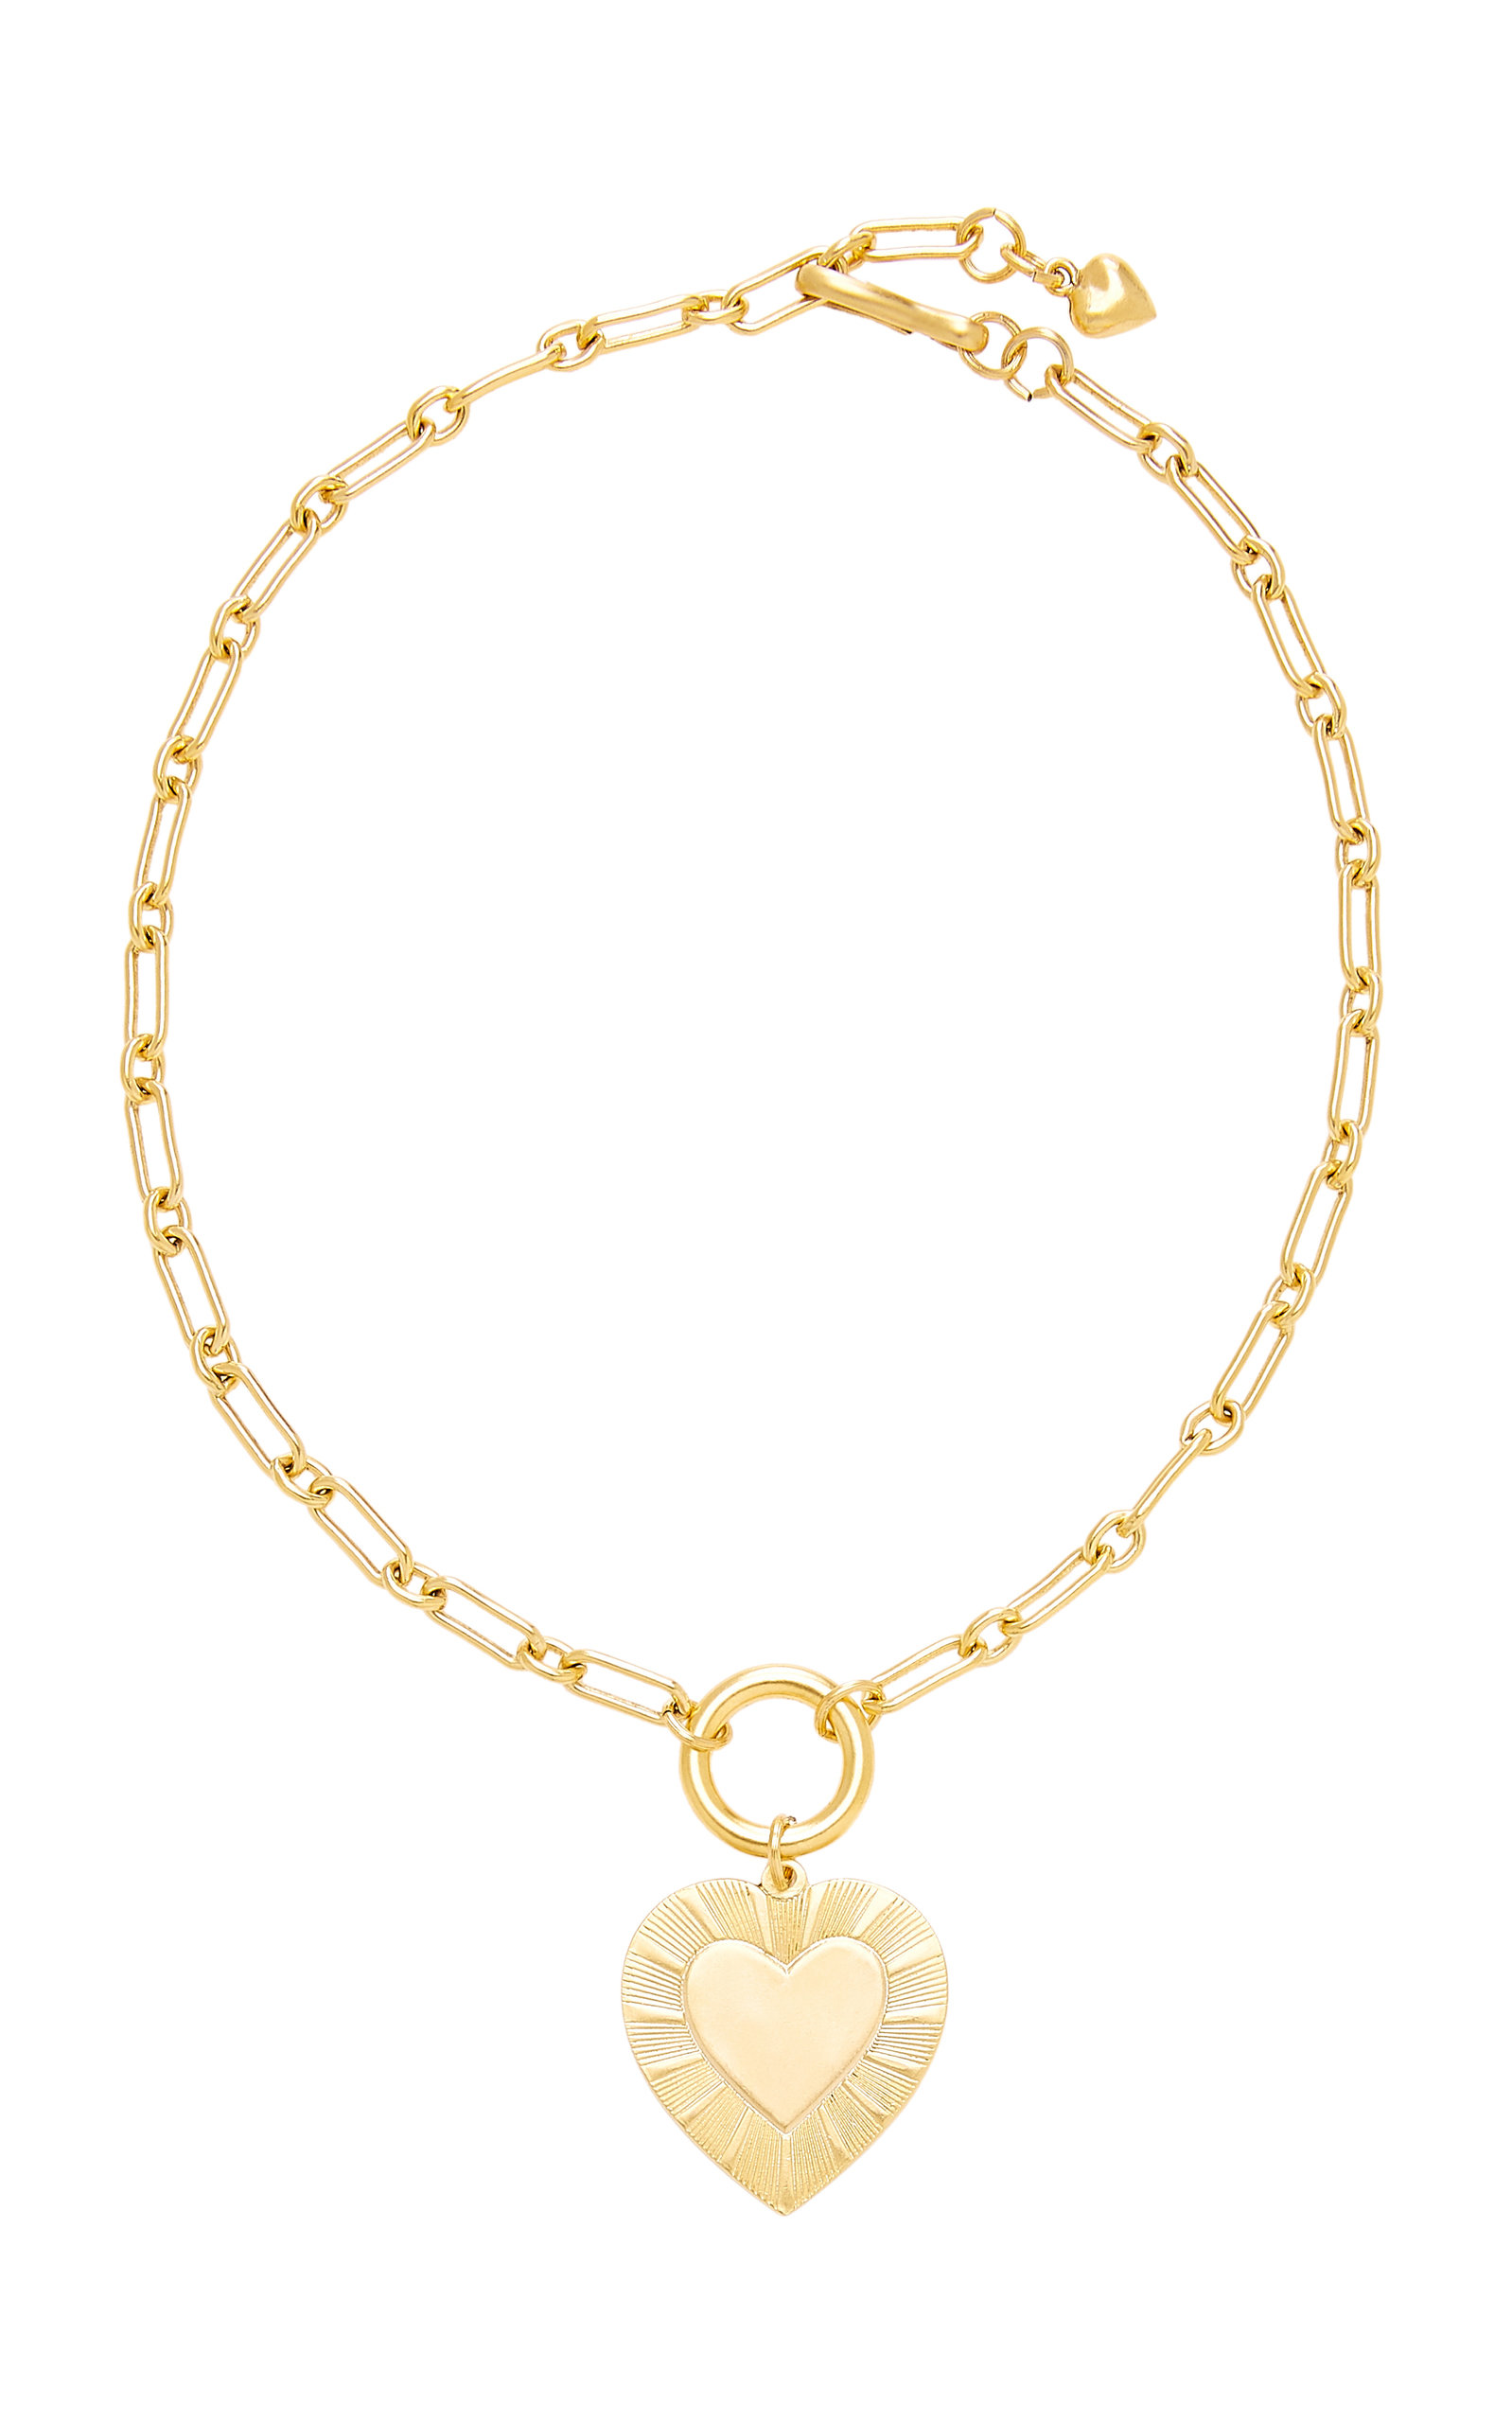 BRINKER & ELIZA THE BEST IS YET TO COME 24K GOLD-PLATED PENDANT NECKLACE